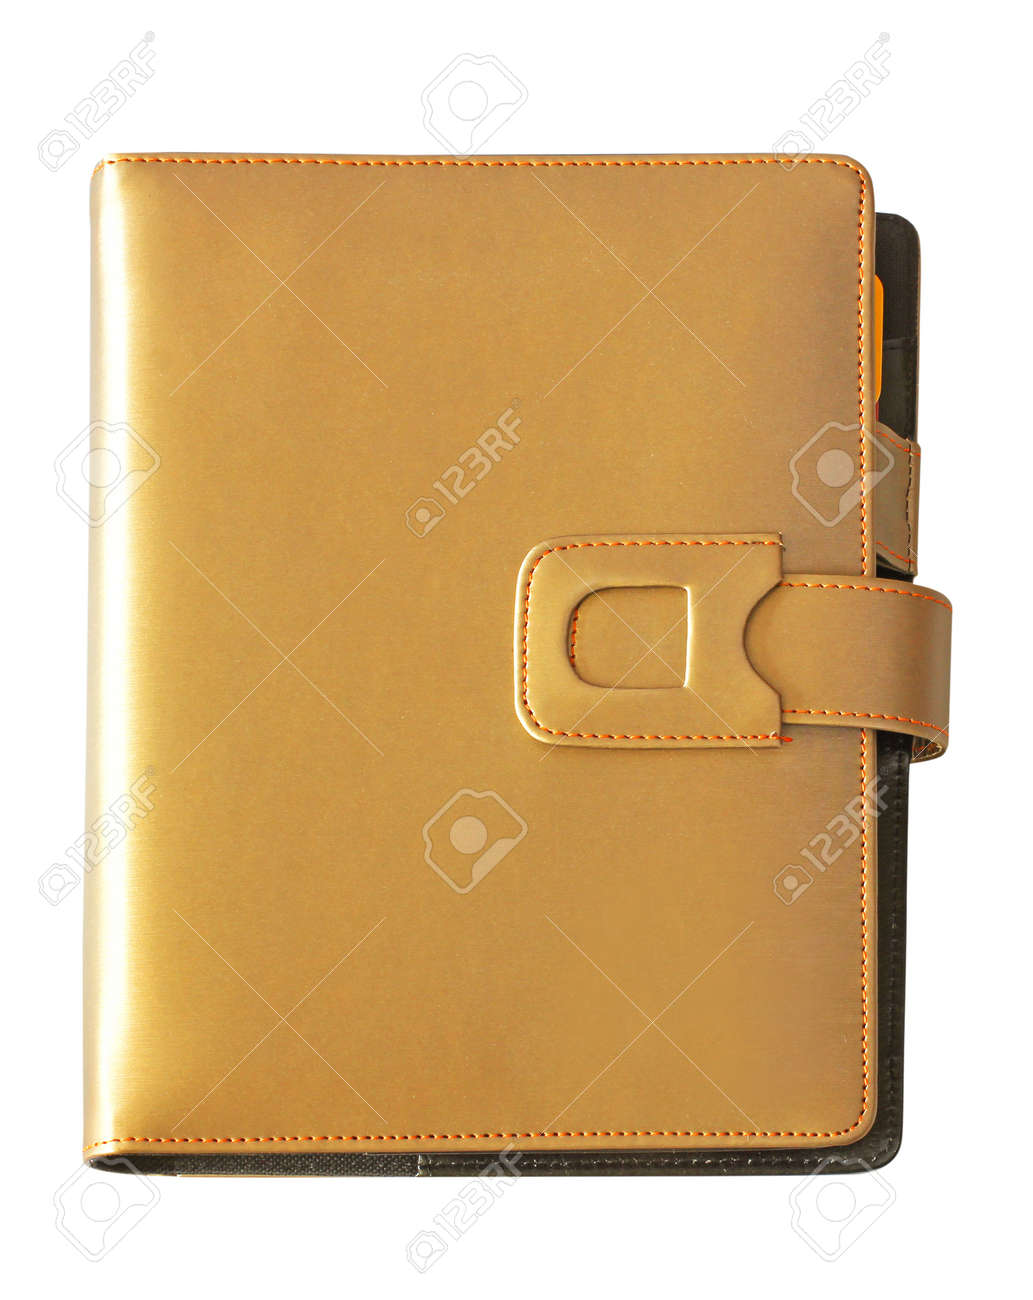 Leather brown cover notebook isolated on white background Stock Photo - 18128408